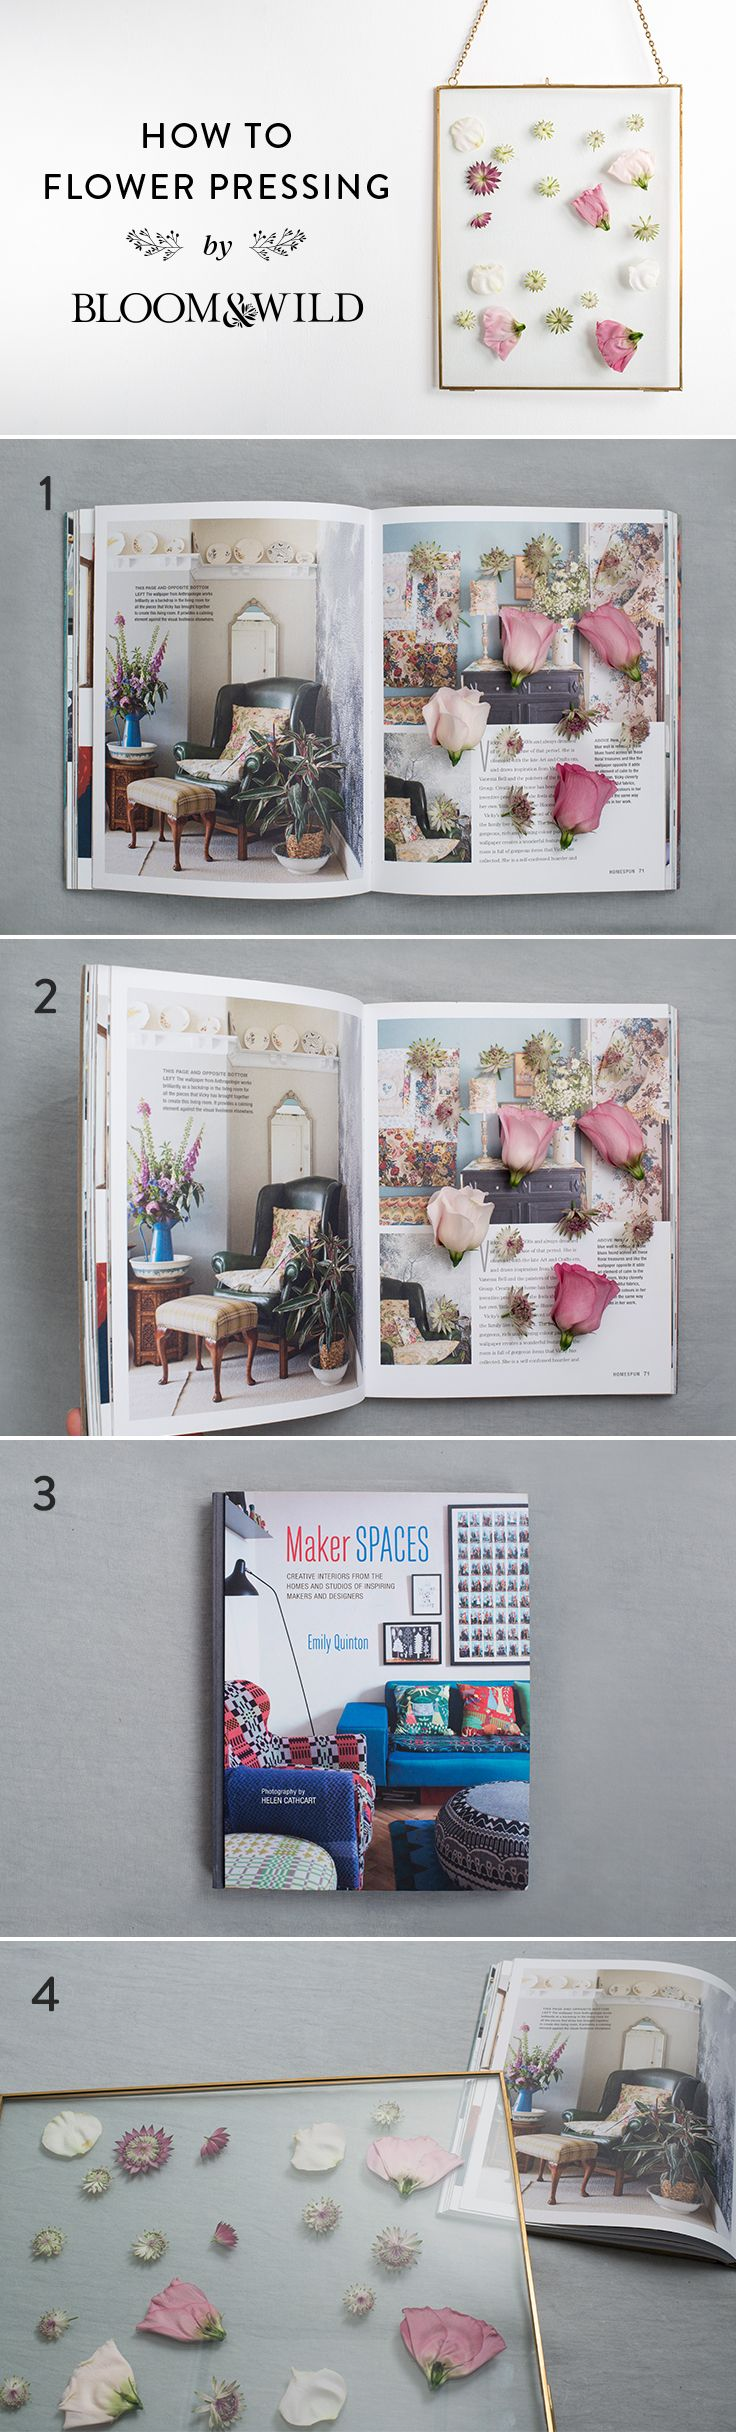 Creating beautiful hanging wall art with your favourite flowers is easy with our four easy steps.     01. Choose a thick book. Lay paper on the inside pages where you're going to place your flowers.    02. Cut your flowers and arrange them on one side of the book.      03. Close the book and leave the flowers to dry for a week.    04. Finally, place the dried flowers in a glass frame and hang.